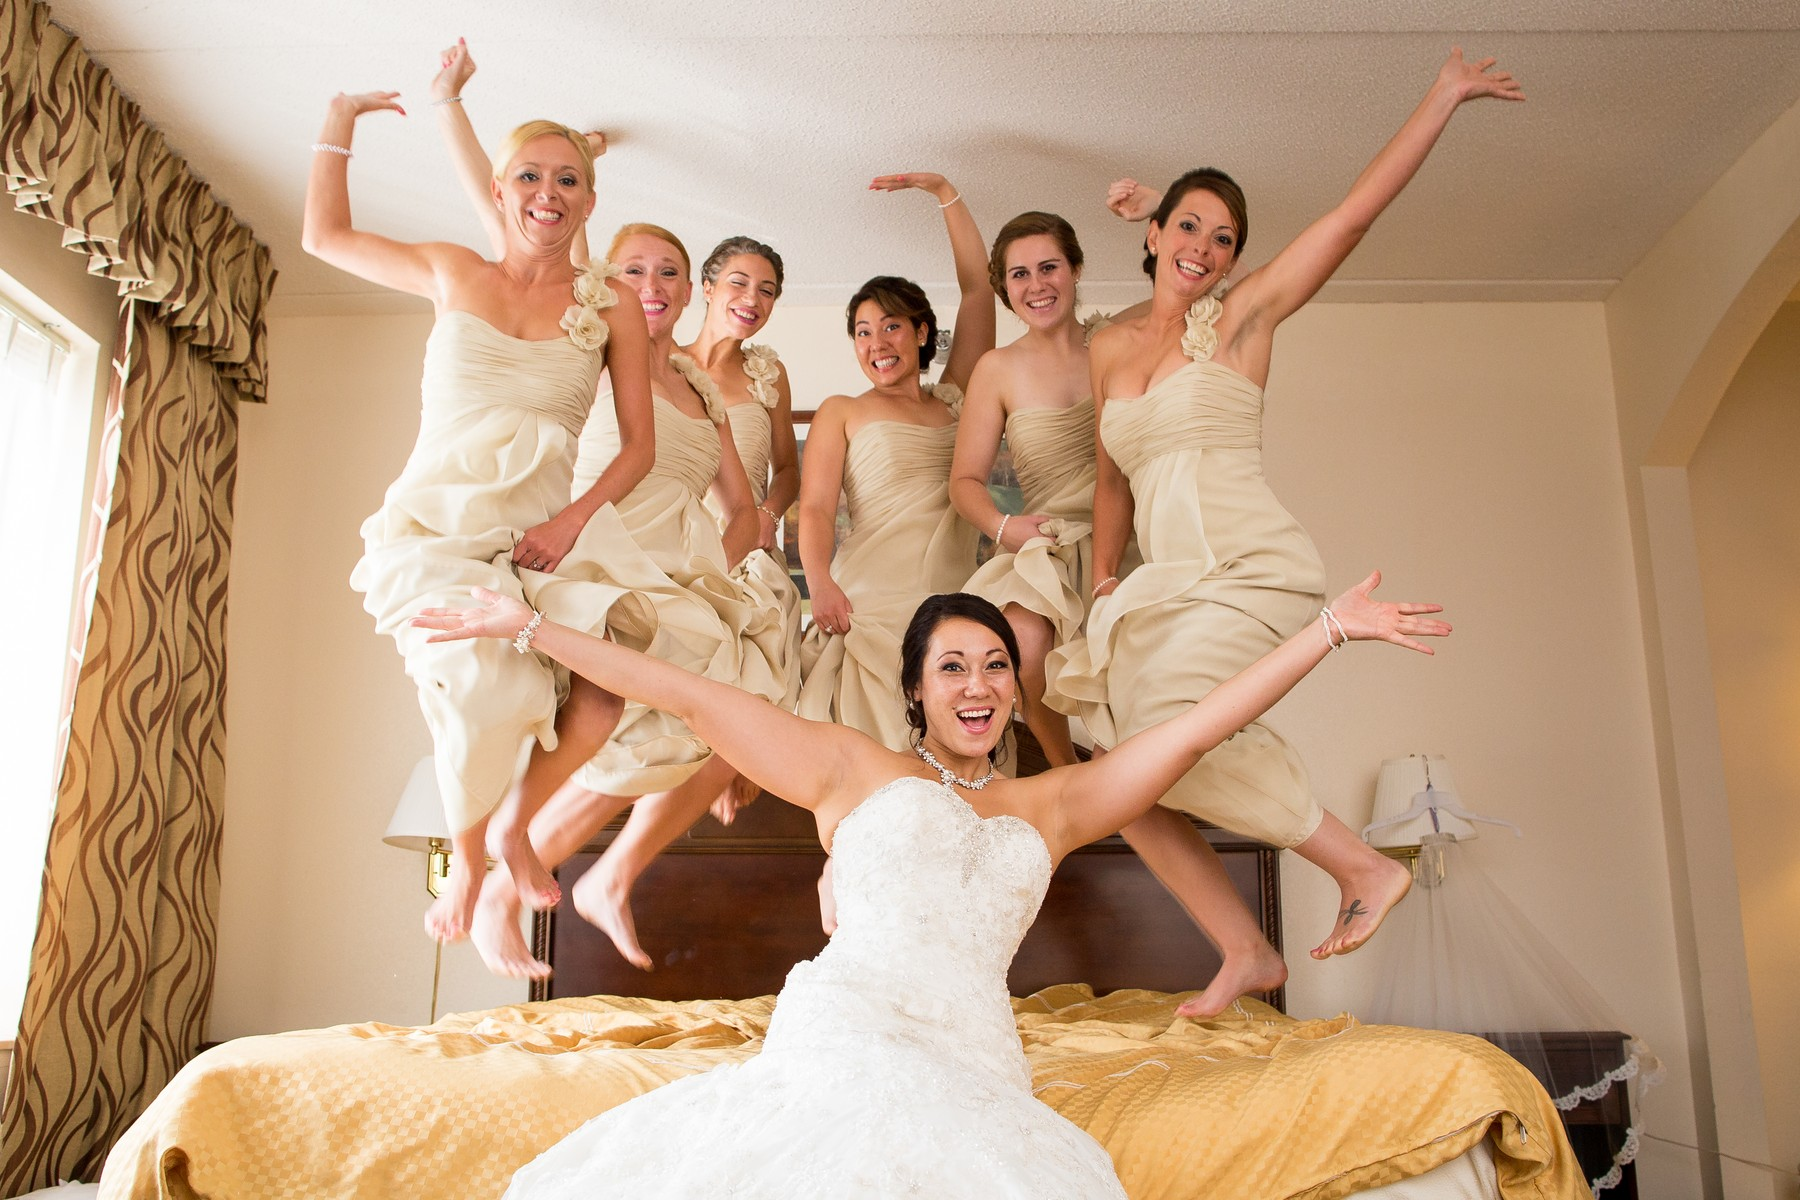 wedding-jumping-on-bed-bride